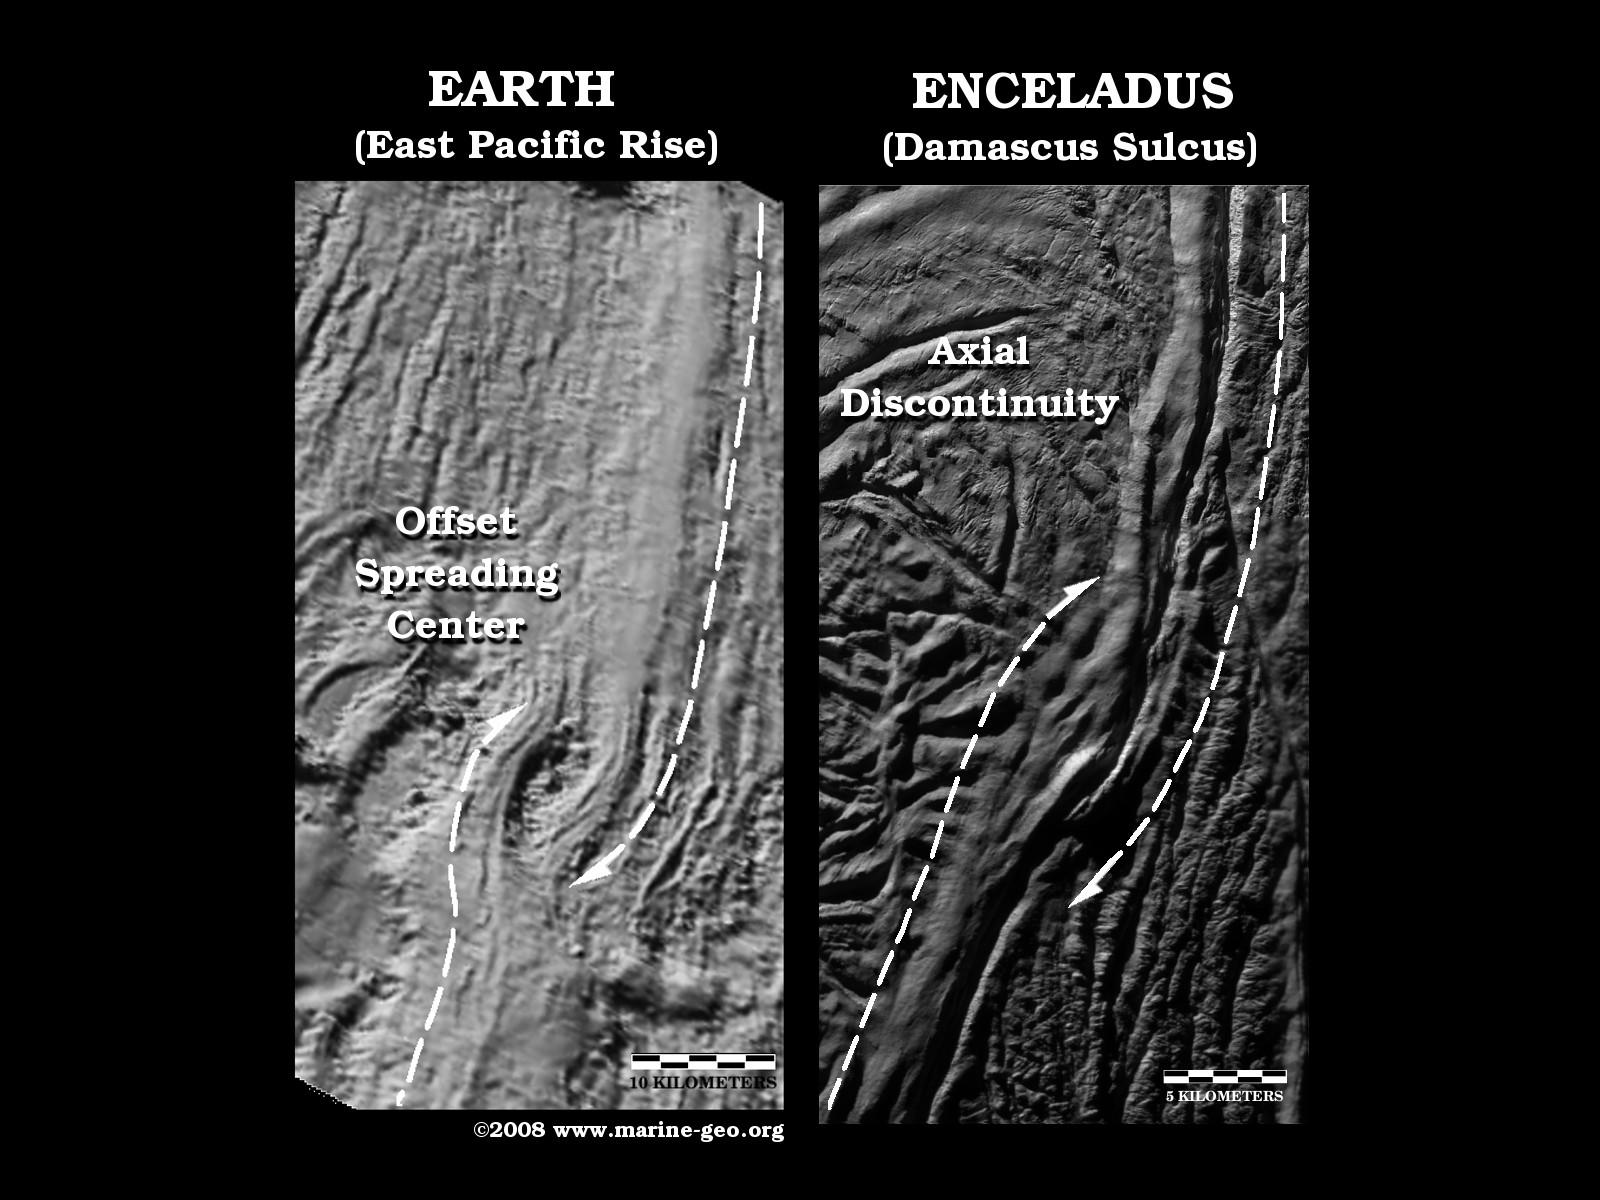 "These two side-by-side images compare a ""twisted"" sea-floor spreading feature on Earth, known as an Offset Spreading Center (OSC), to a very similar looking twisted break, or axial discontinuity, in the Damascus Sulcus ""tiger stripe"" on Saturn's moon Enceladus."